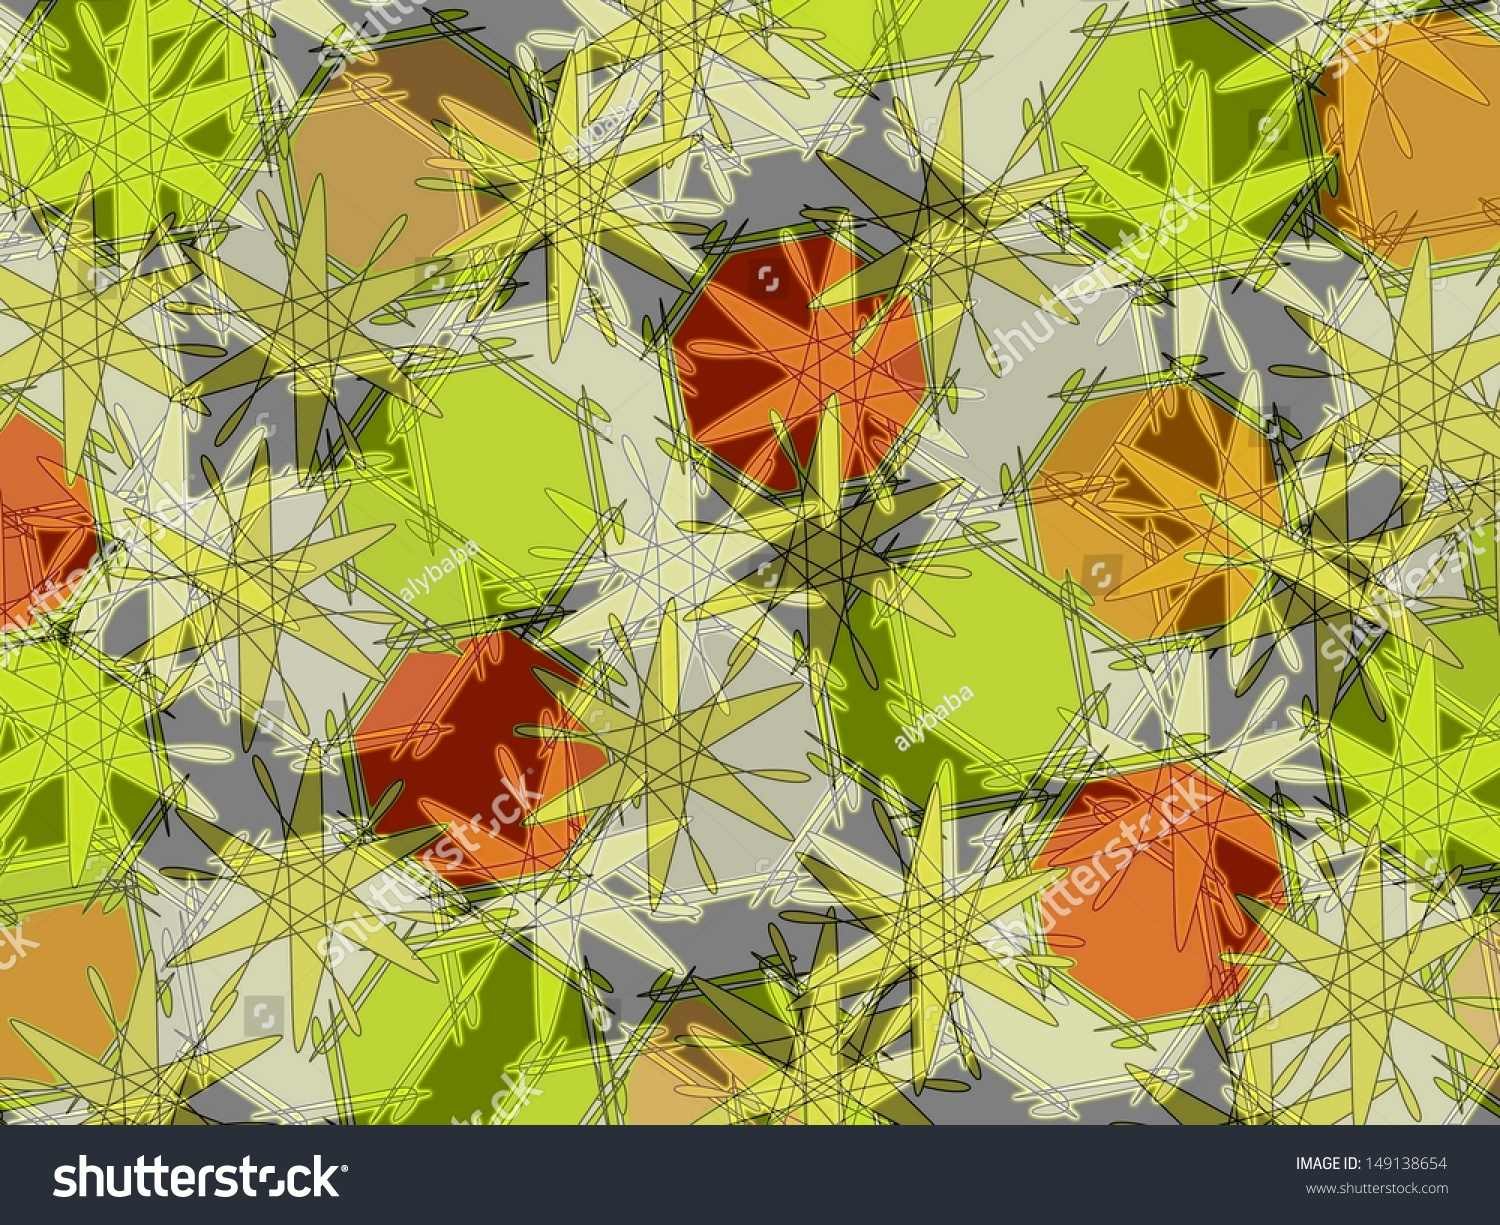 vibrant design modern floral wallpaper. Bright colorful modern abstract design with geometric and floral motifs  superimposed on plain grey background to Colorful Modern Abstract Design Geometric The Best 100 Vibrant Floral Wallpaper Image